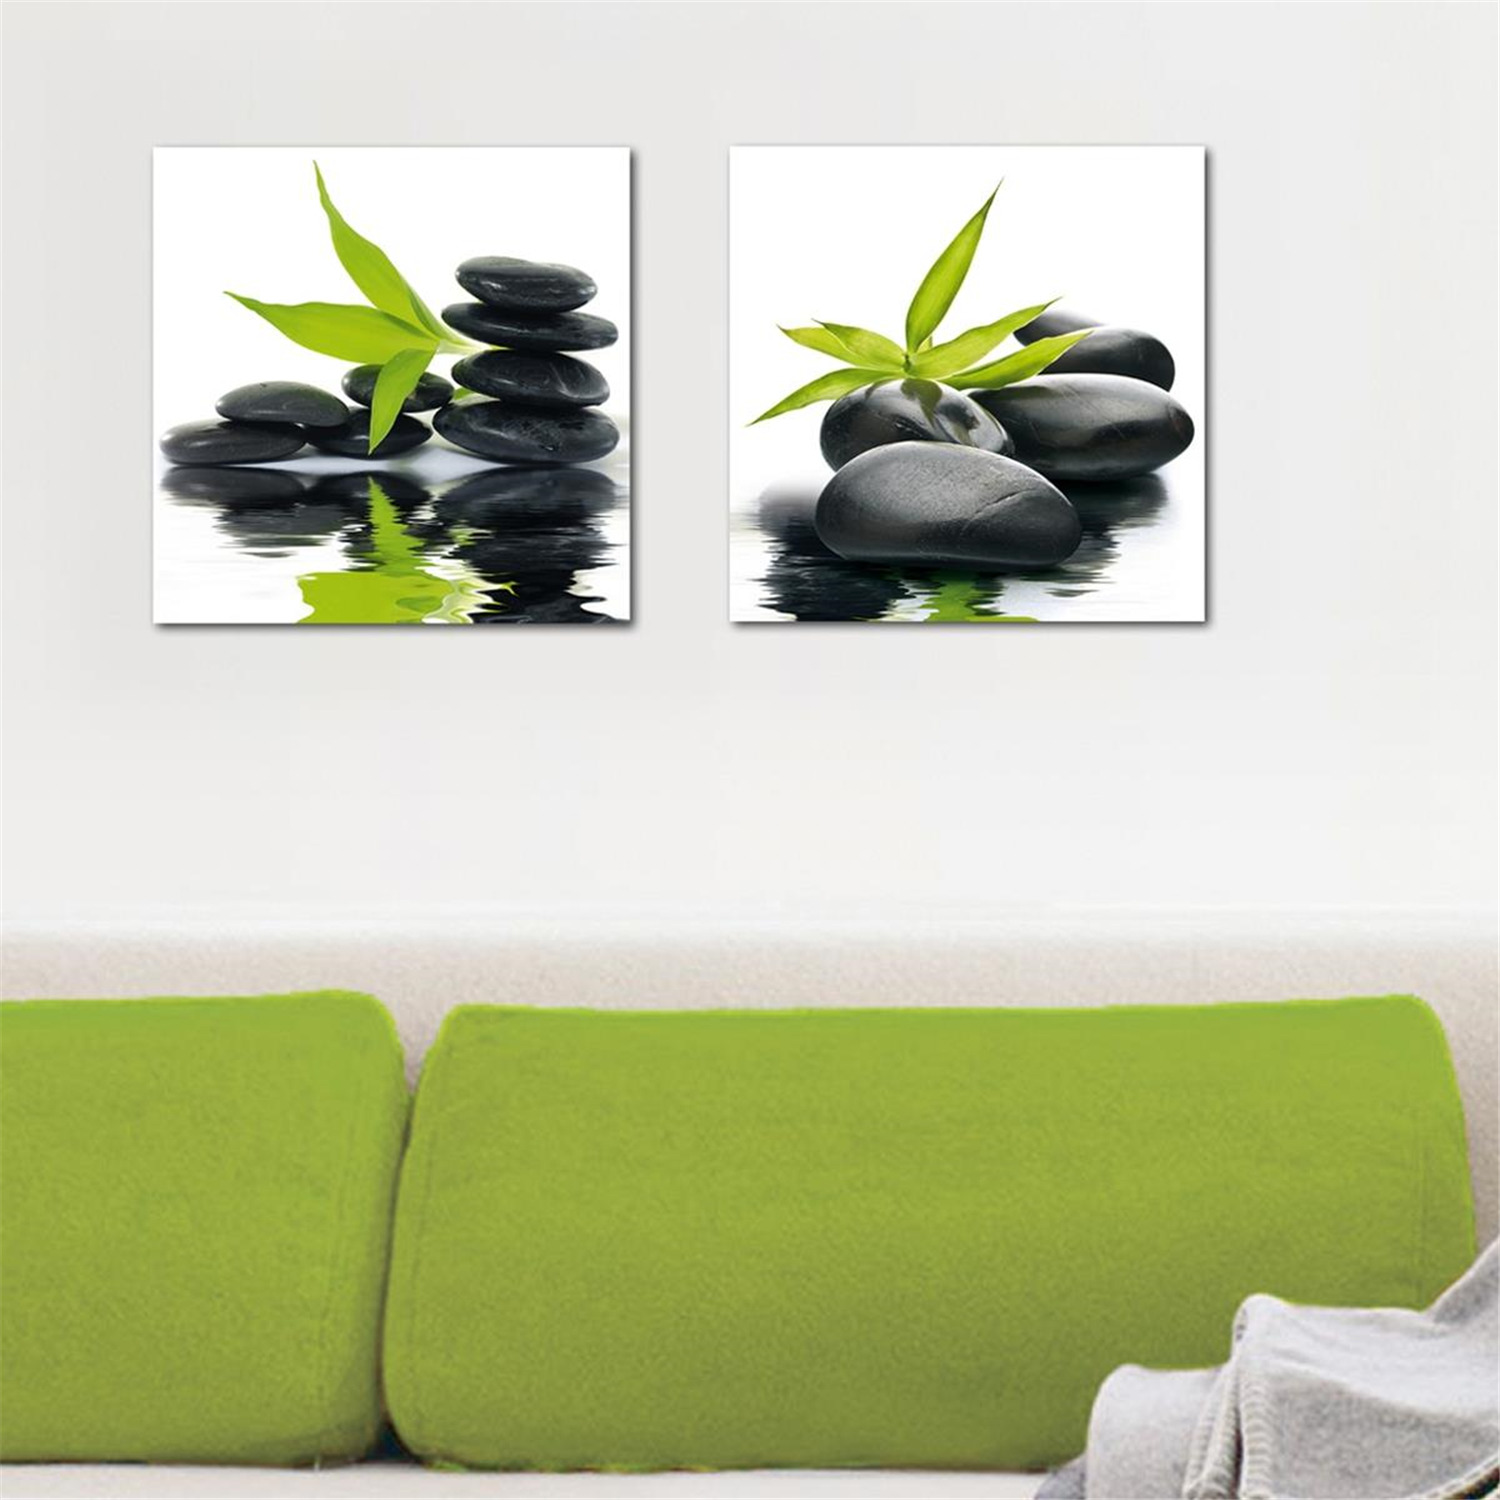 Platin Art Deco Glass Wall Decor Art On Glass Zen